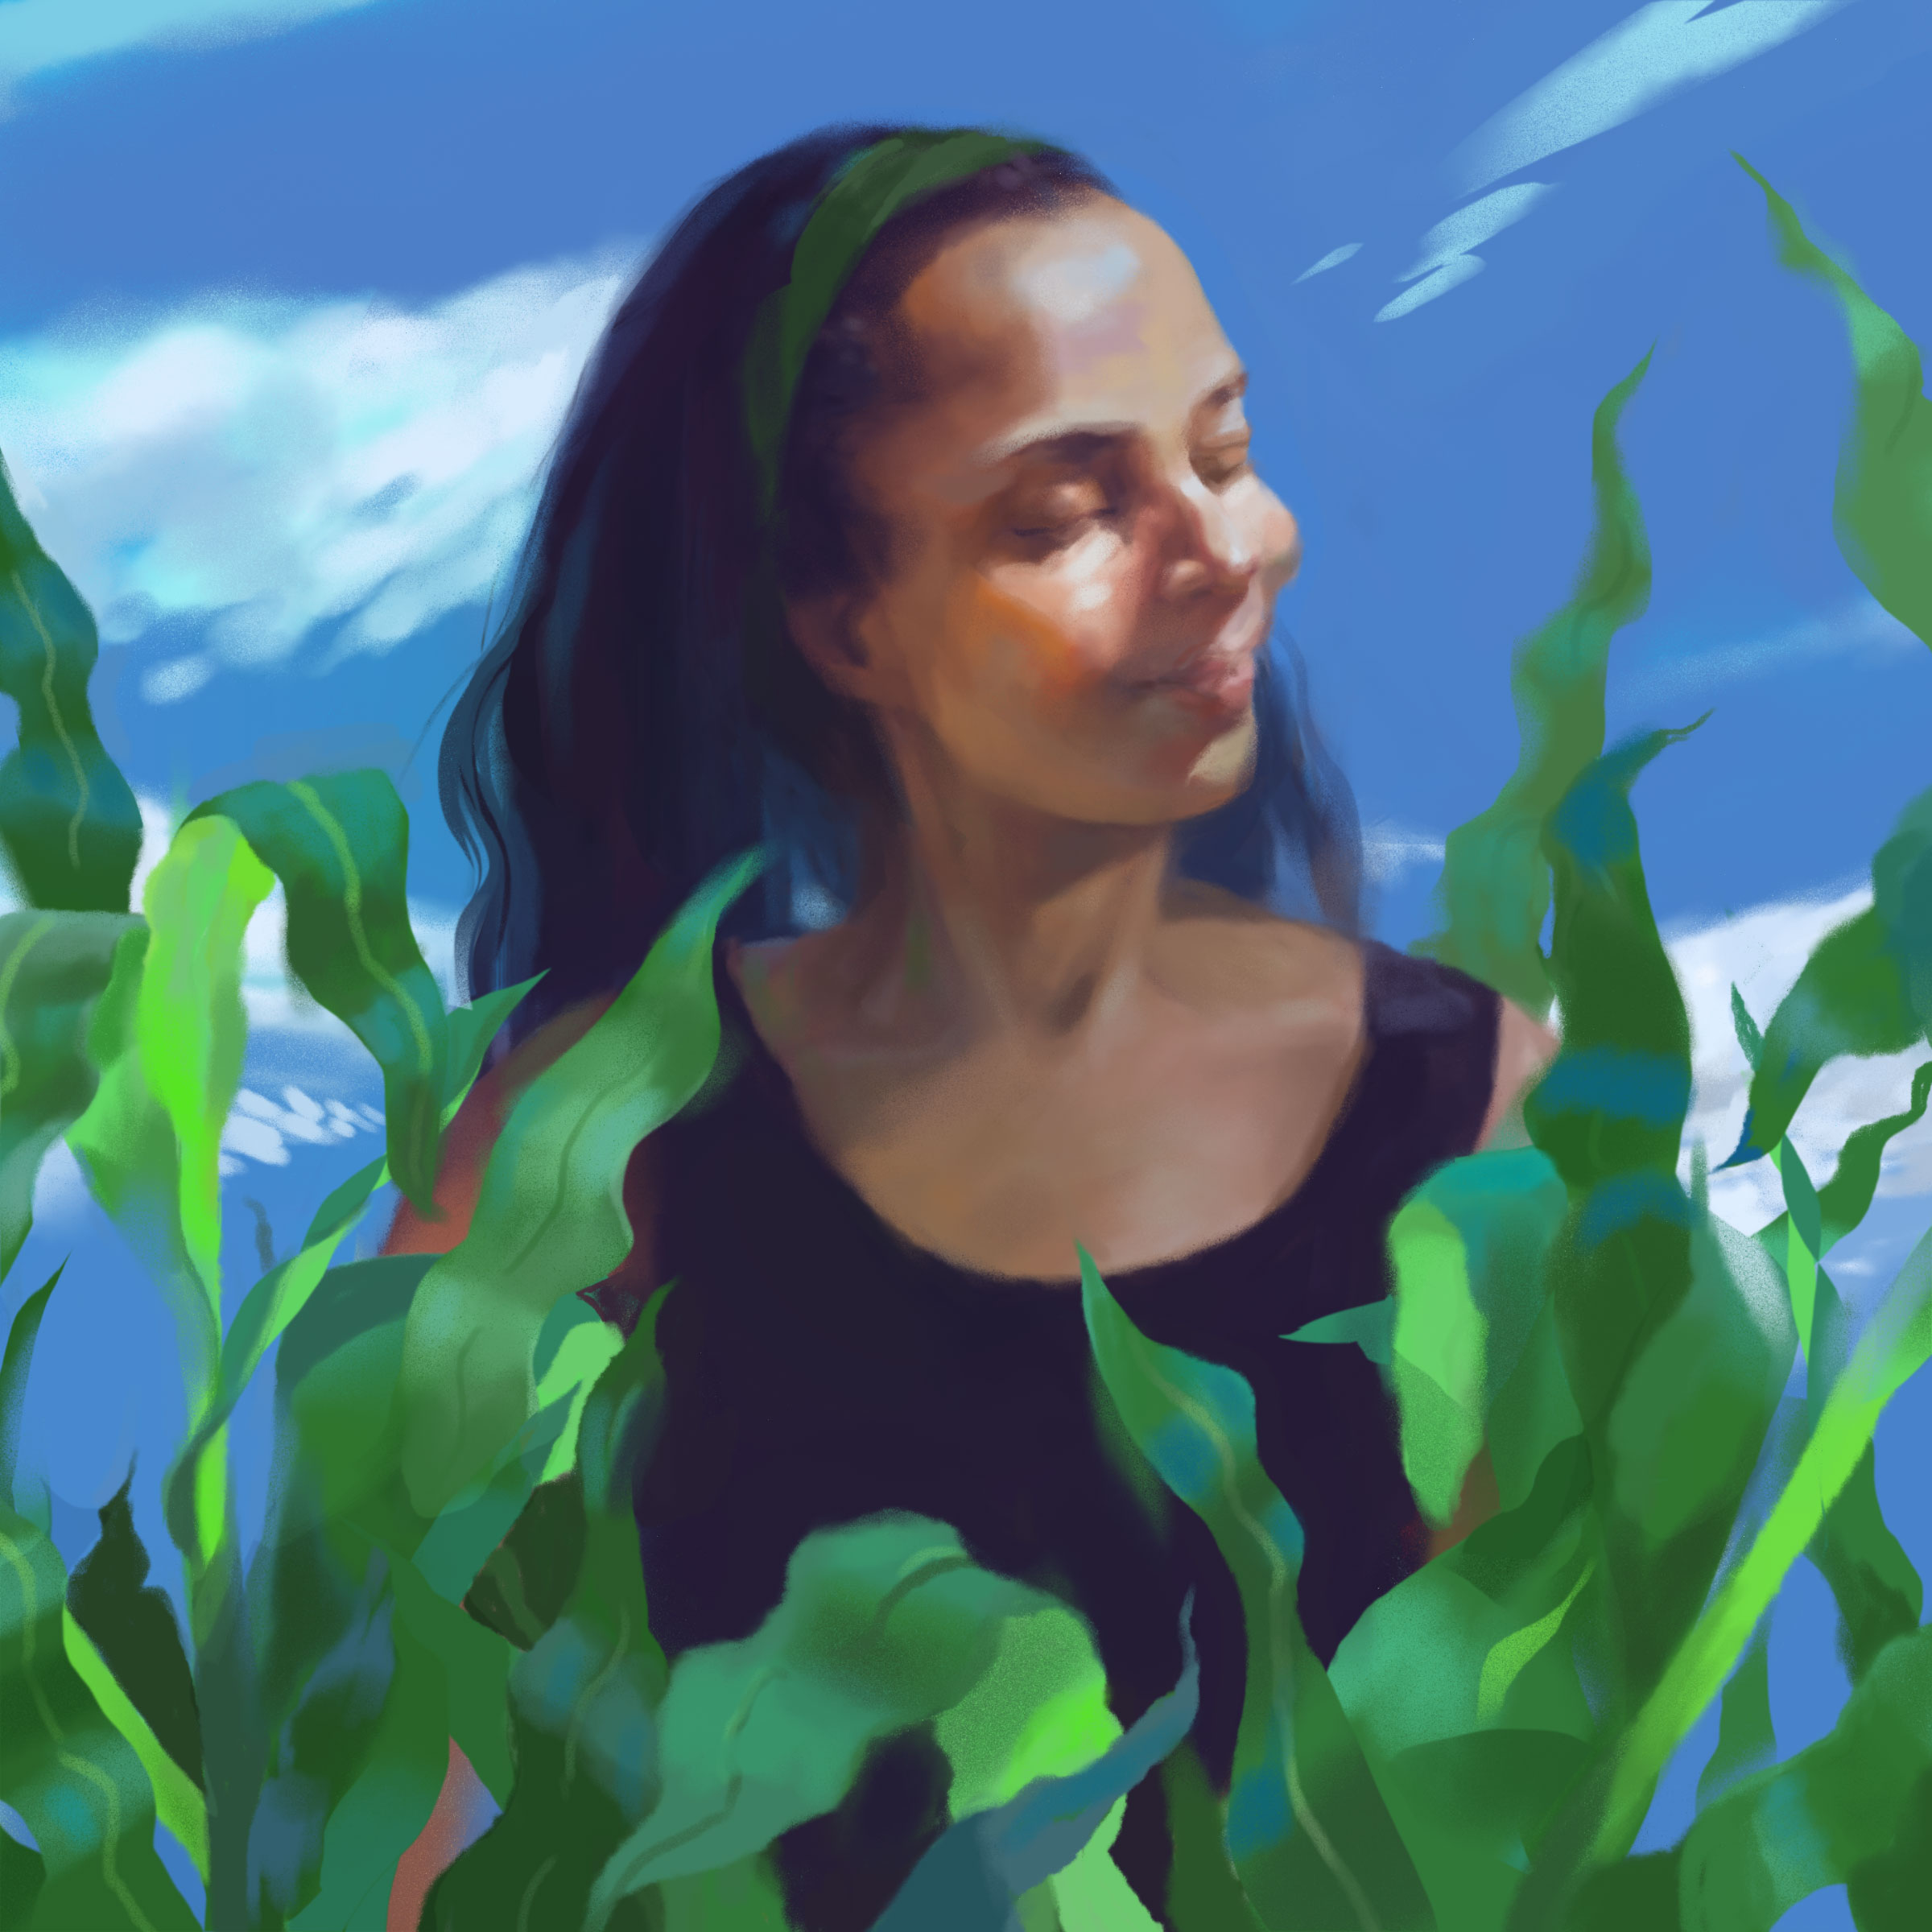 CarolynArcabascio_RhiannonGiddens_Illustration.jpg